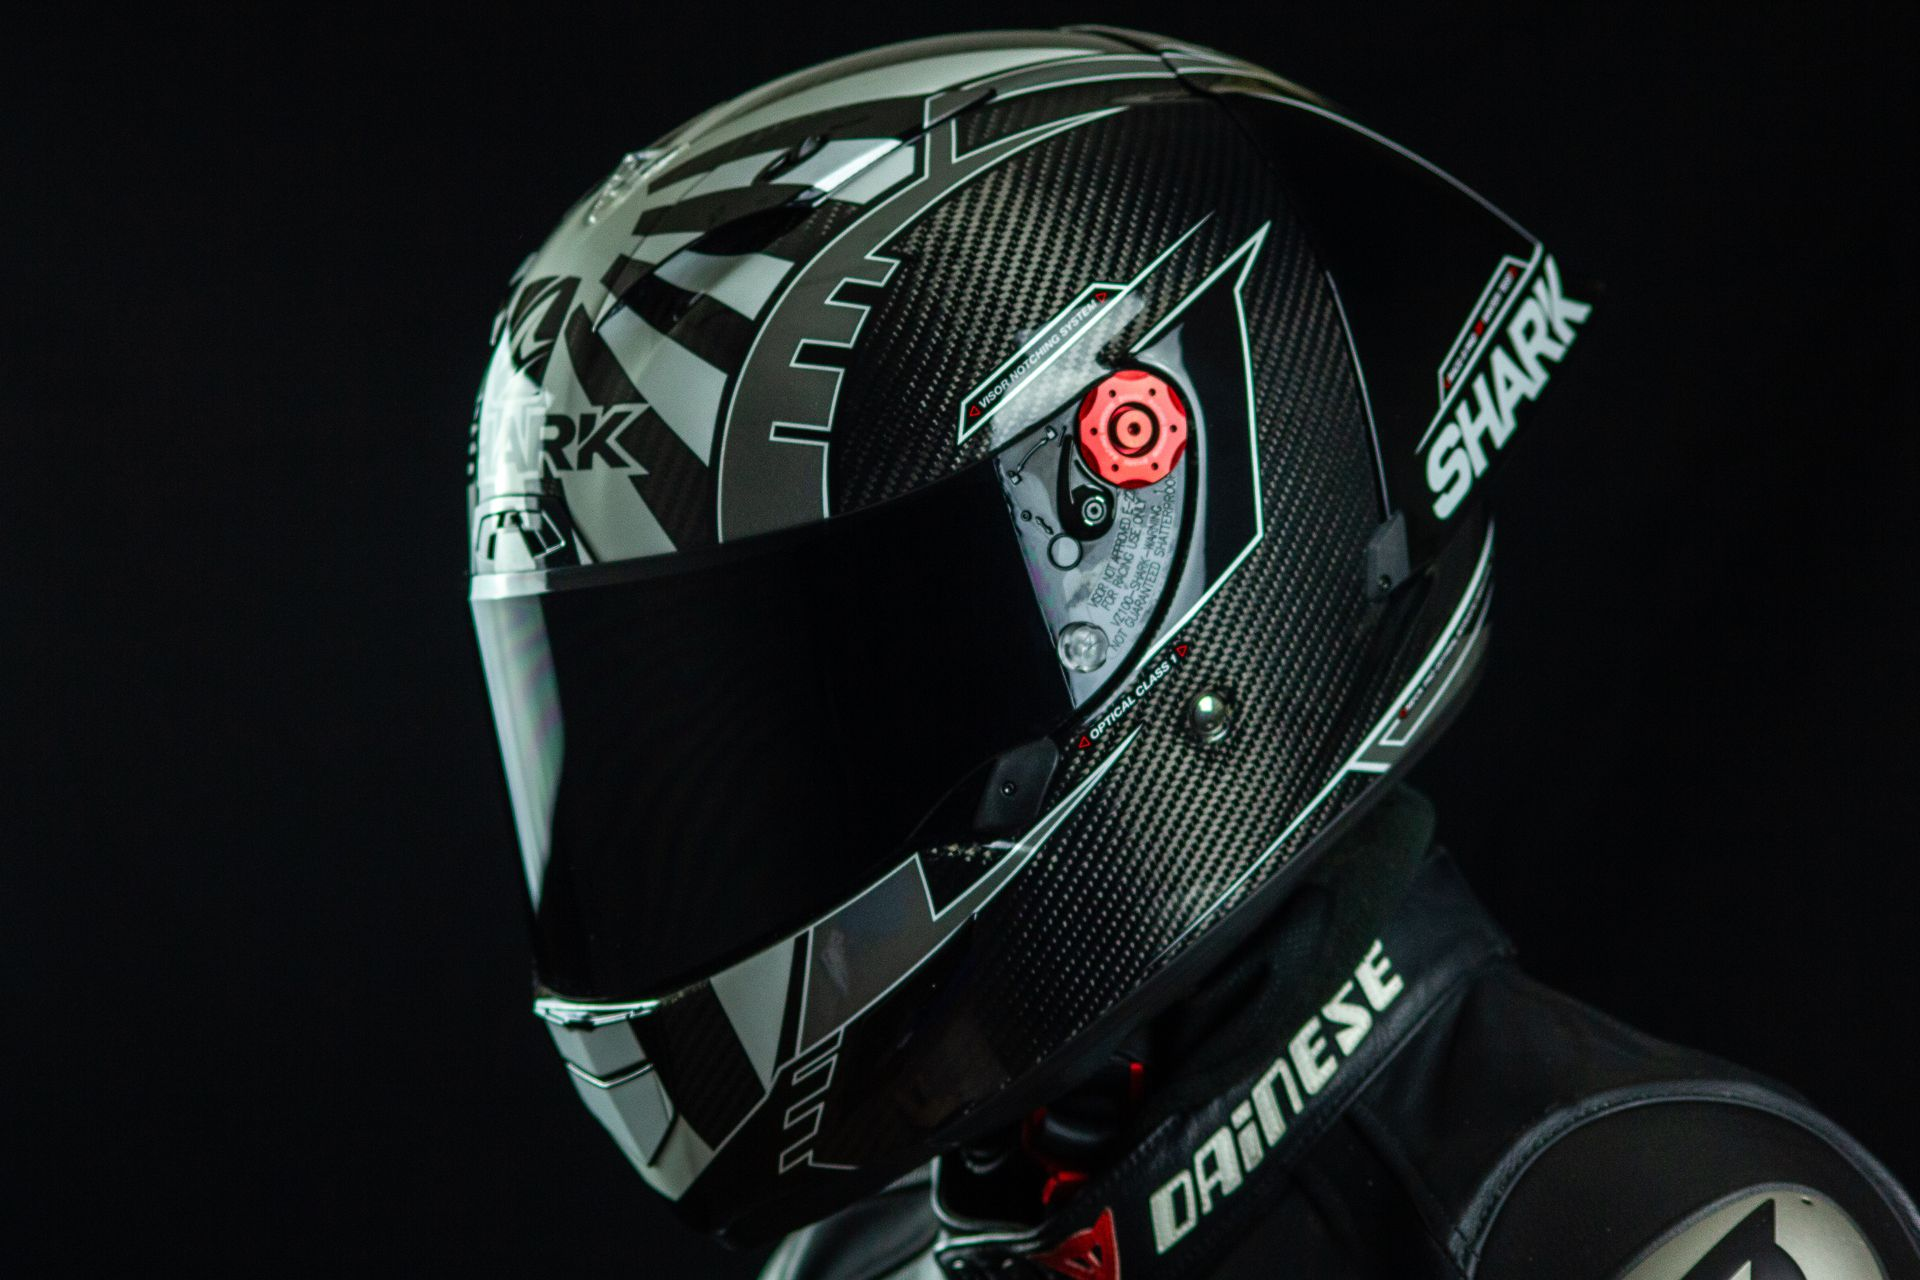 Profil aérodynamique du casque Shark Race-R Pro GP